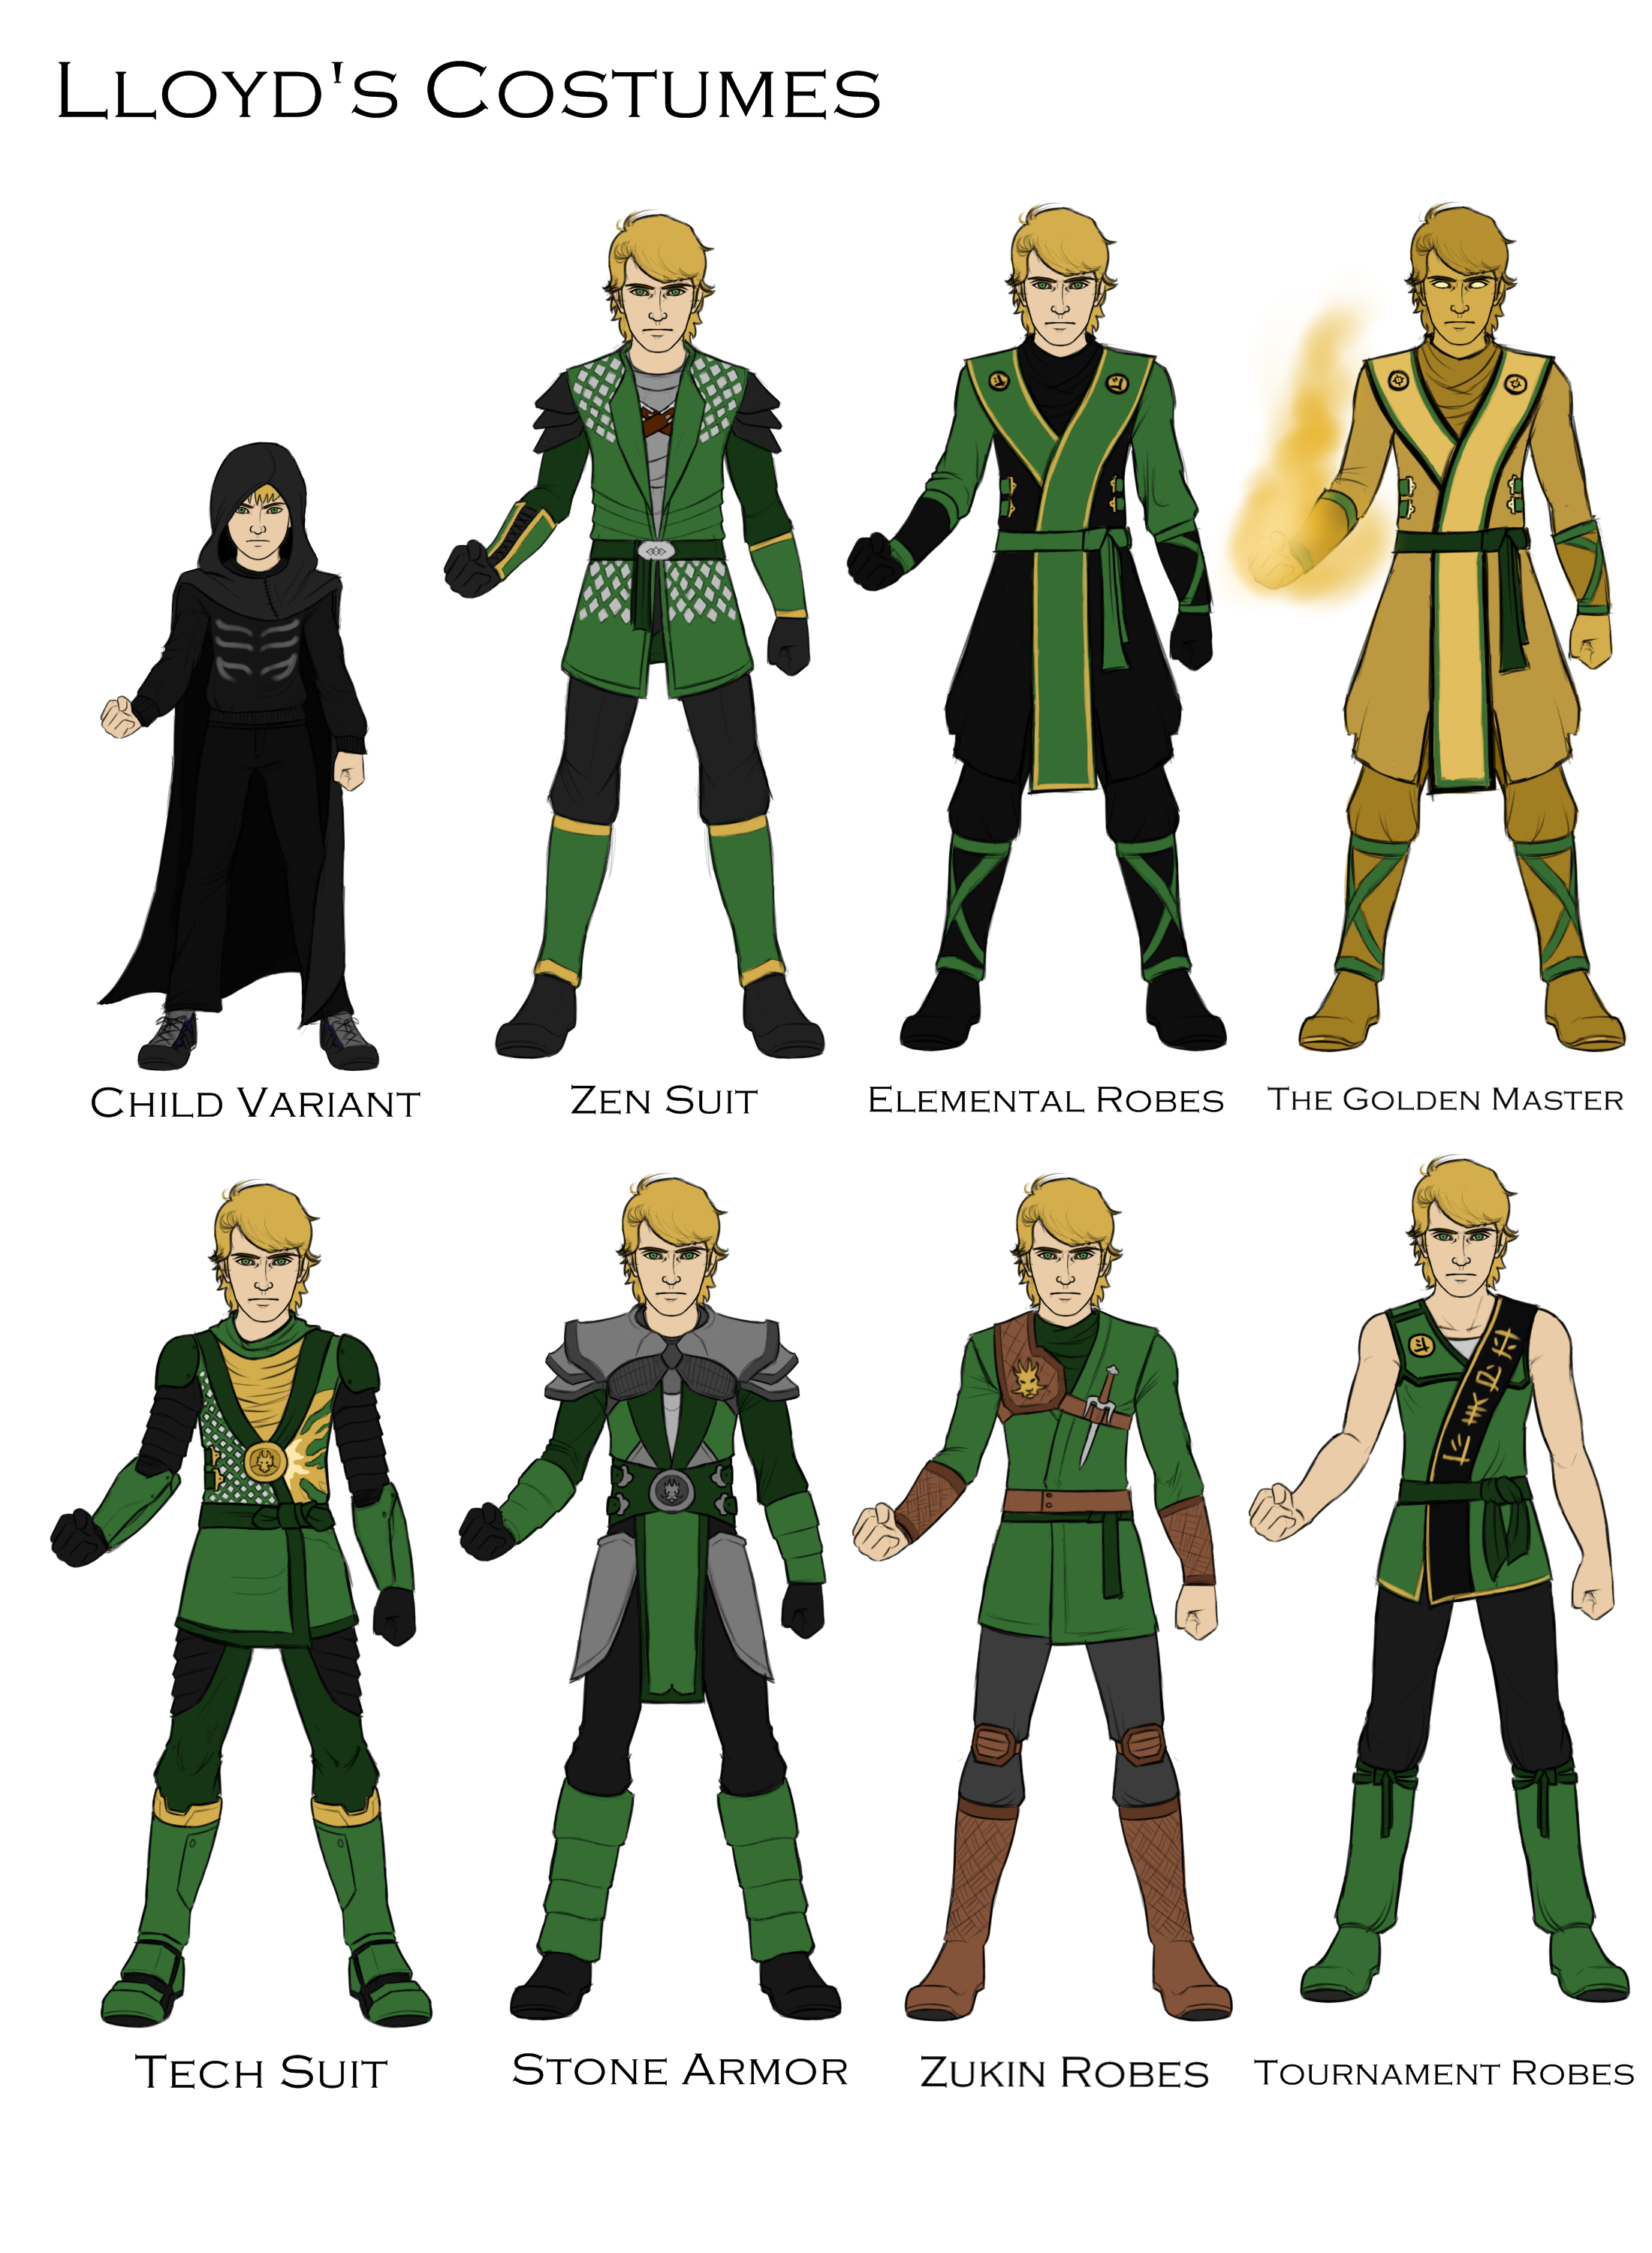 Lloyds Costume Designs By Joshuad17 On DeviantArt